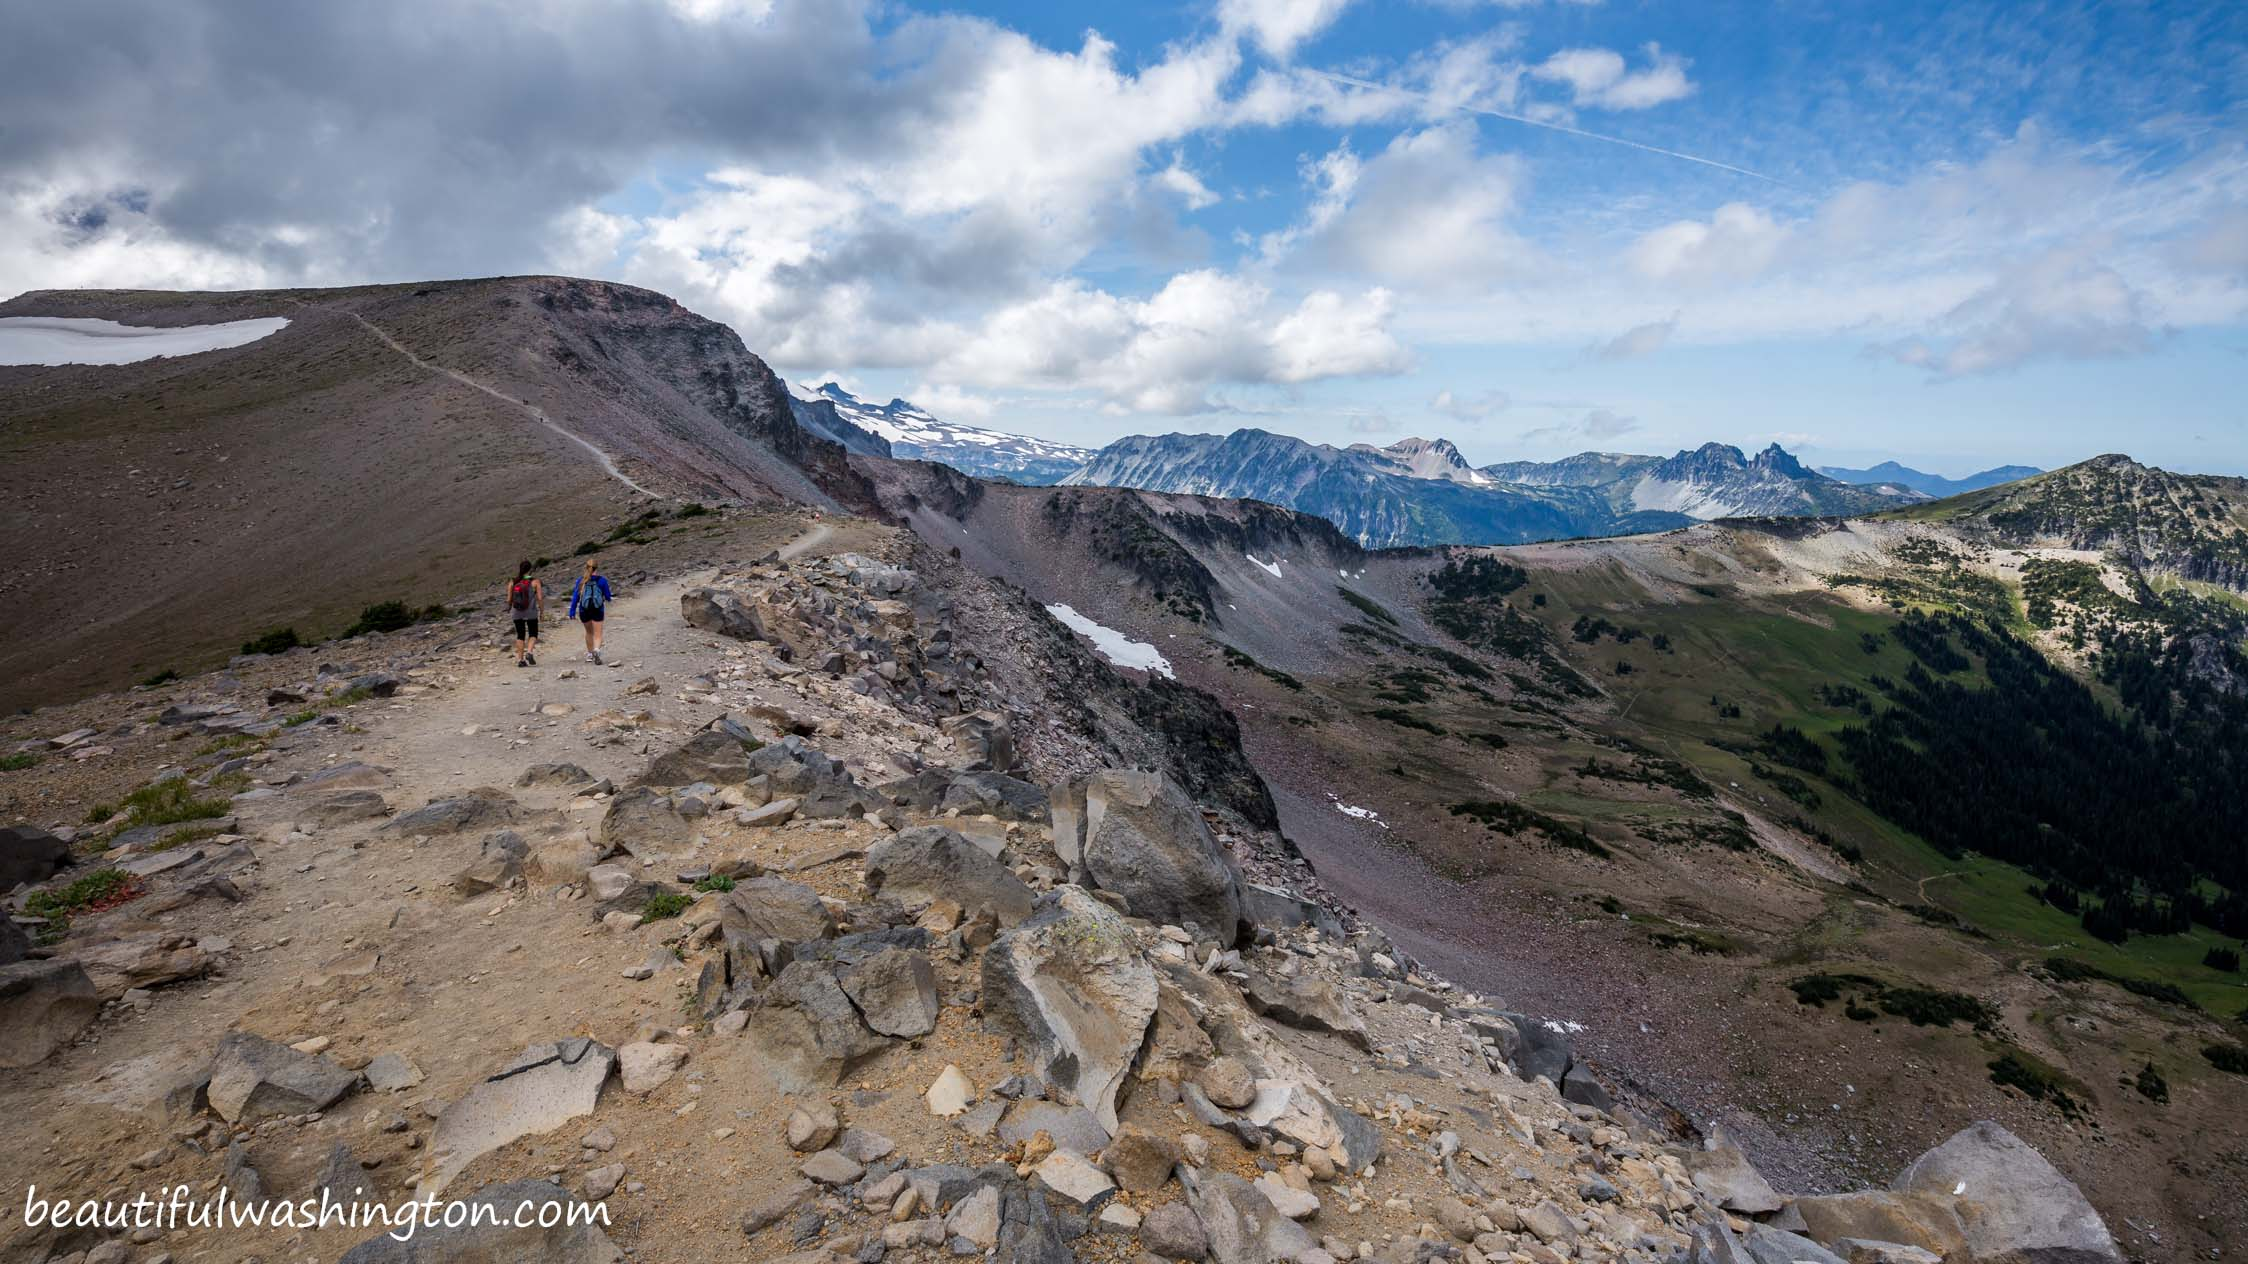 Photo from Mountain Rainier, Sunrise Area, Burroughs Mountain Trail